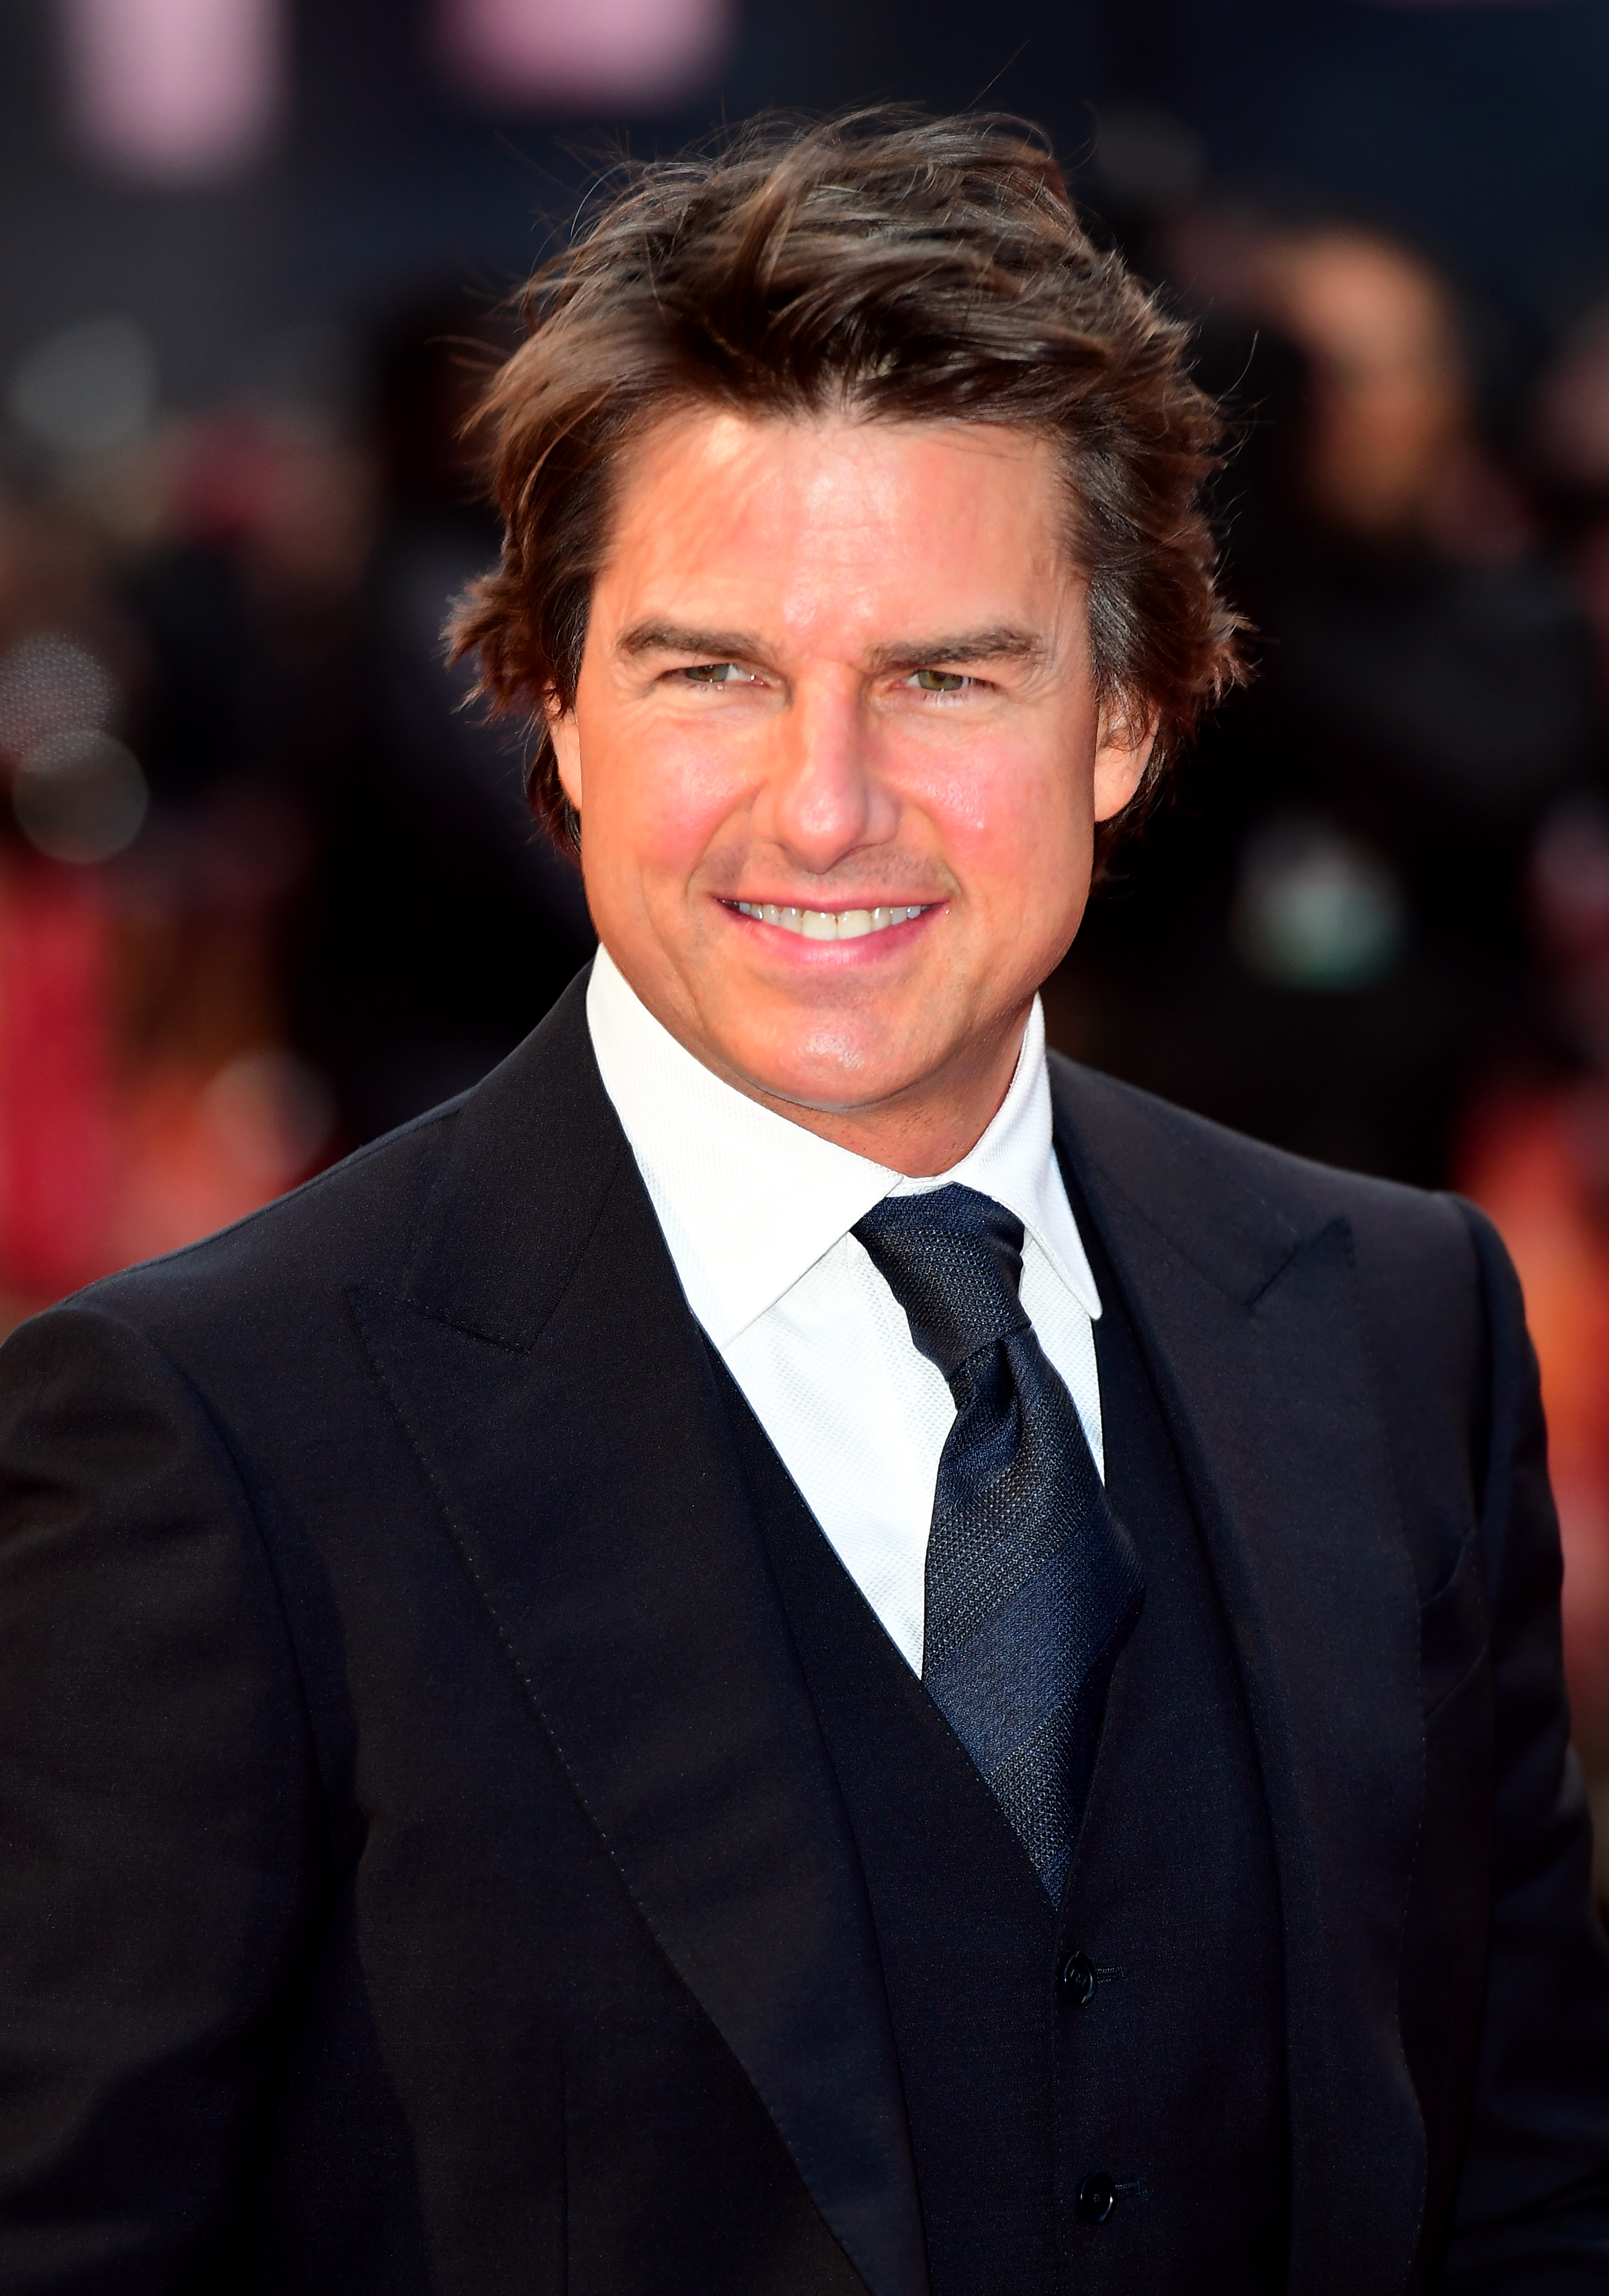 Tom Cruise at a premiere